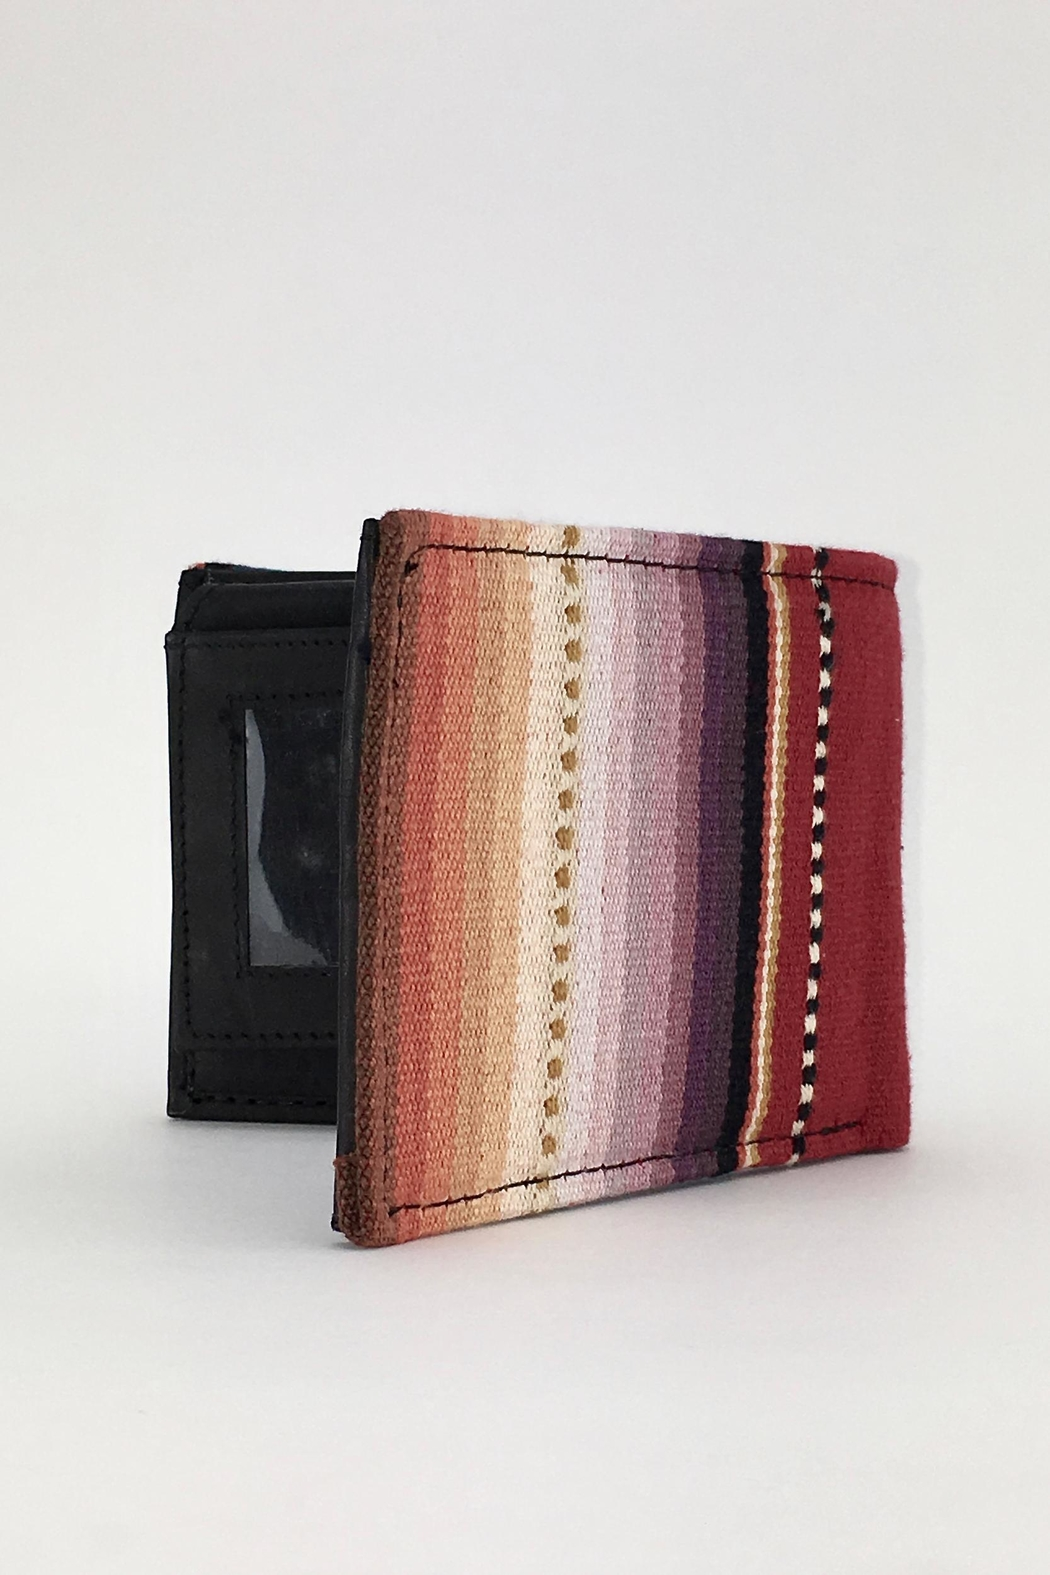 Unbranded Red-Sarape-Woven-Textile Handcrafted Billfold-Wallet - Side Cropped Image